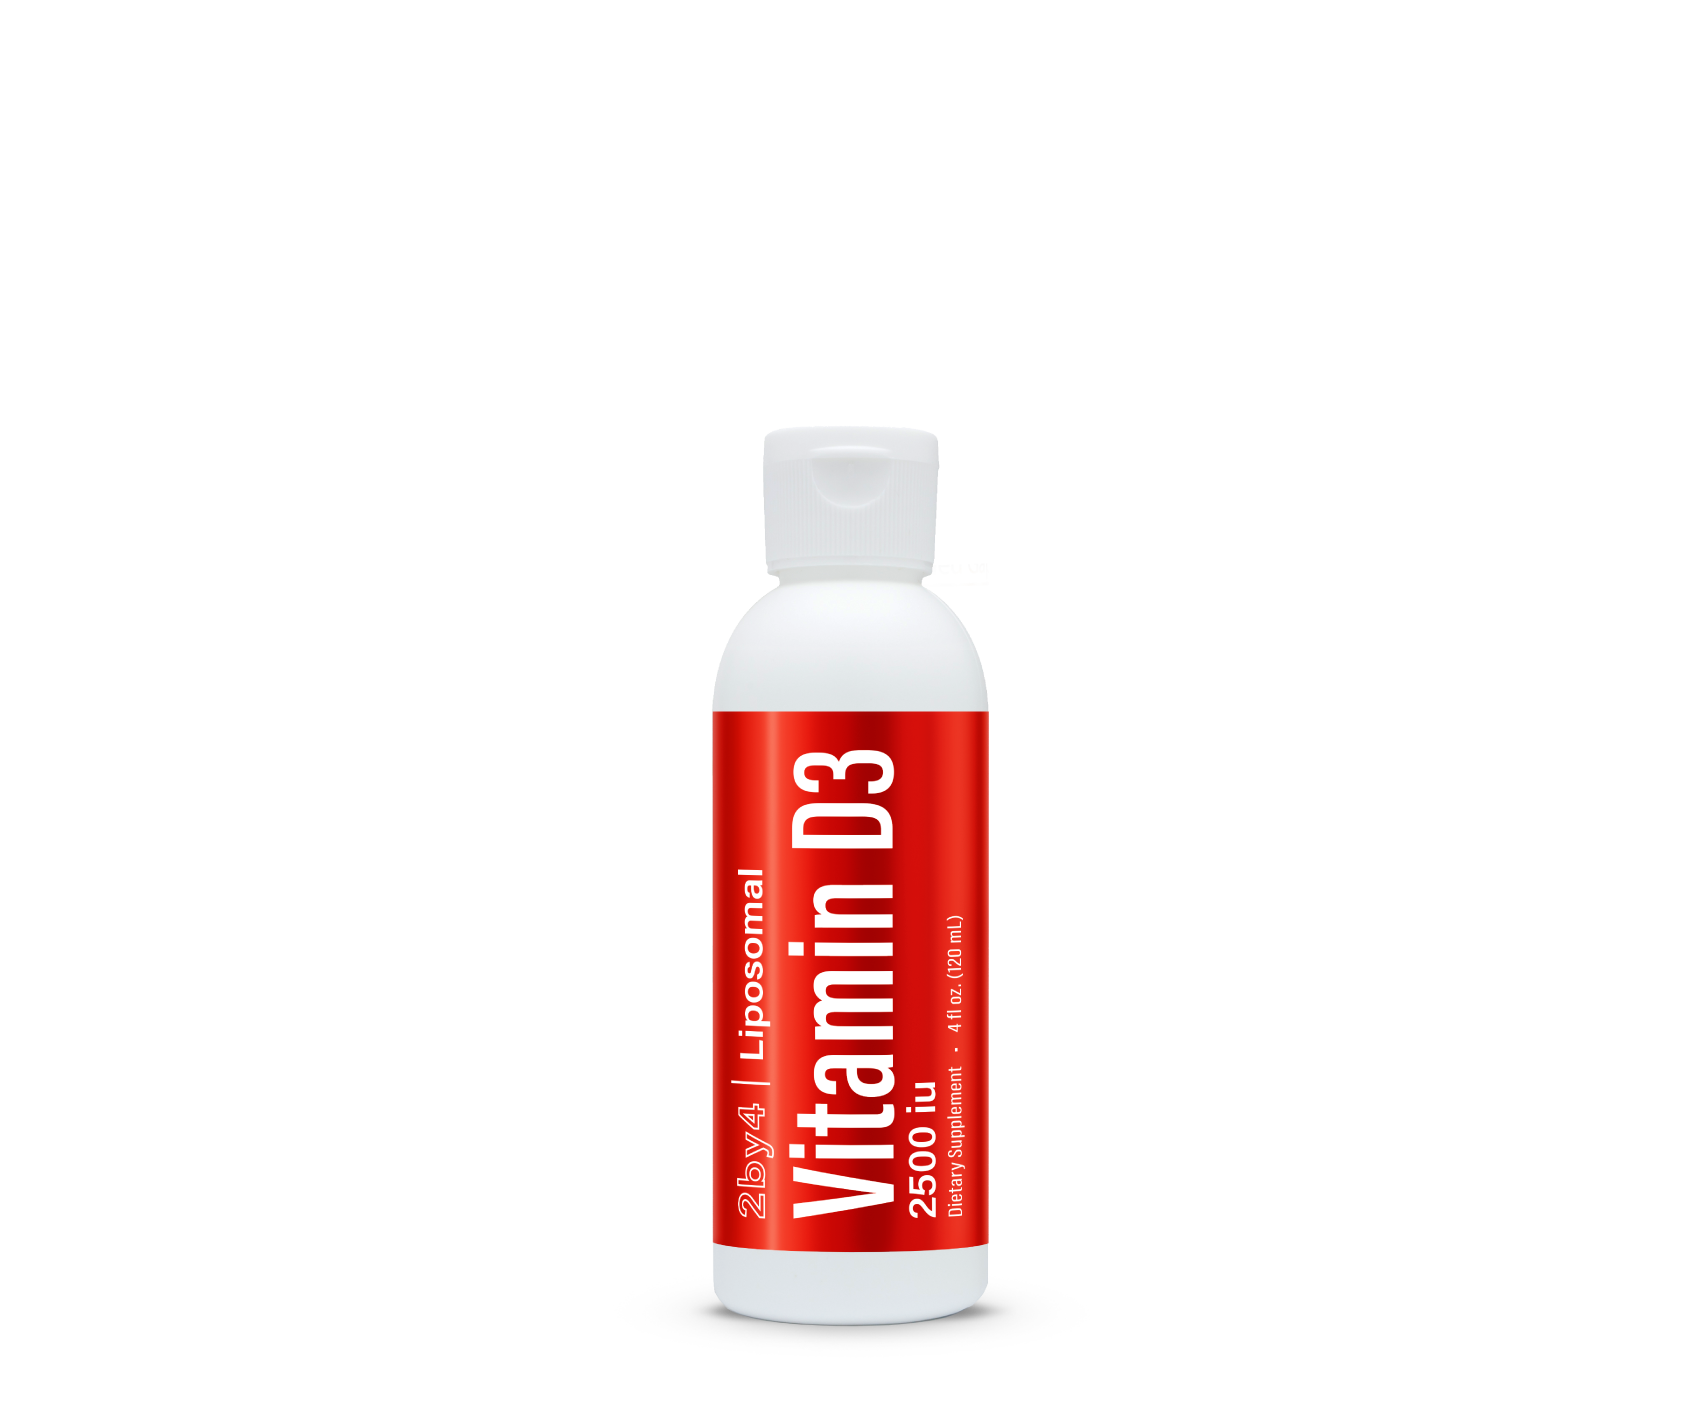 2by4 Liposomal Vitamin D3 - with Nutristack Technology